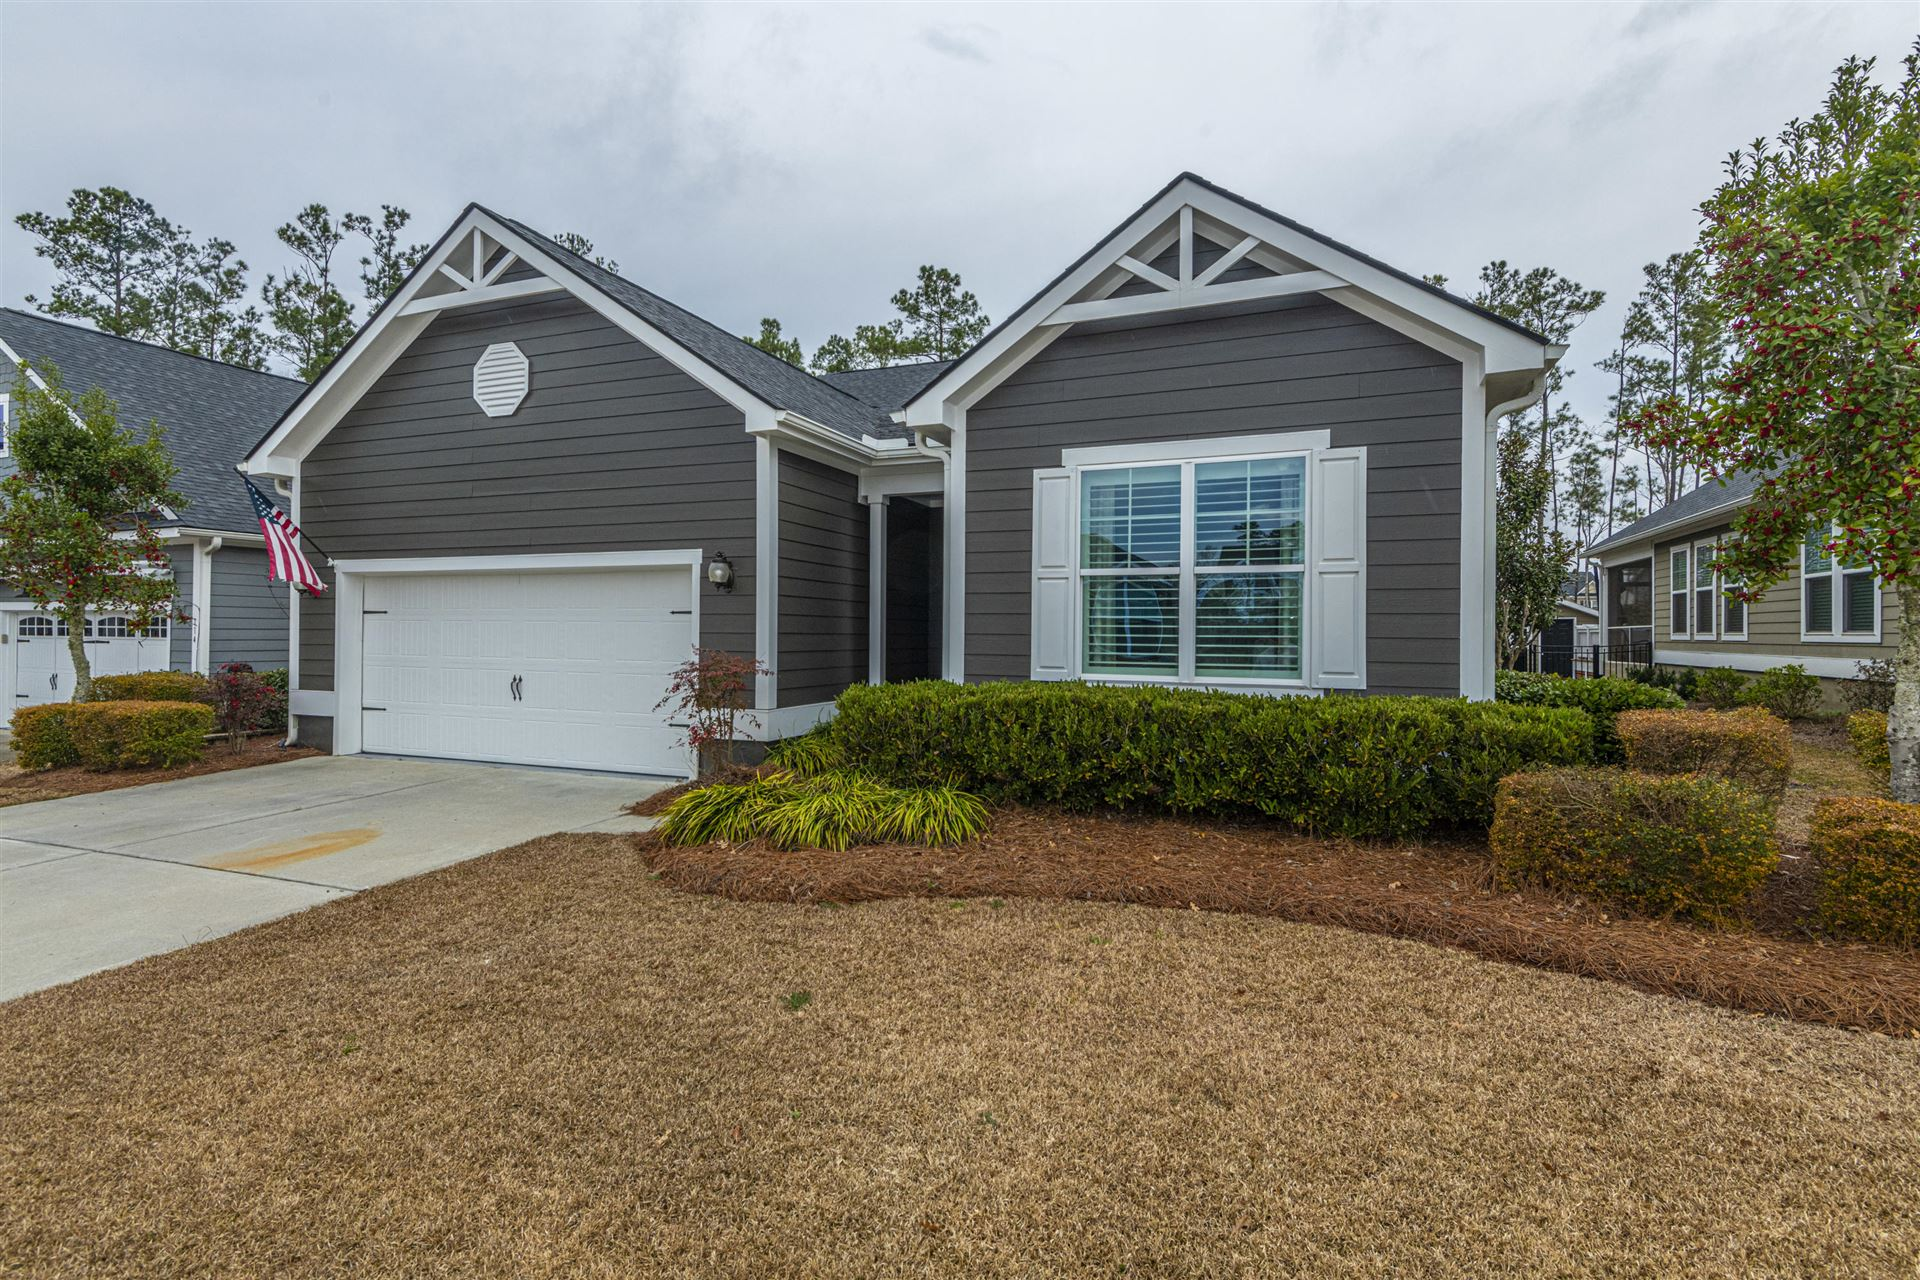 Photo of 112 Riviera Drive, Summerville, SC 29483 (MLS # 21002201)